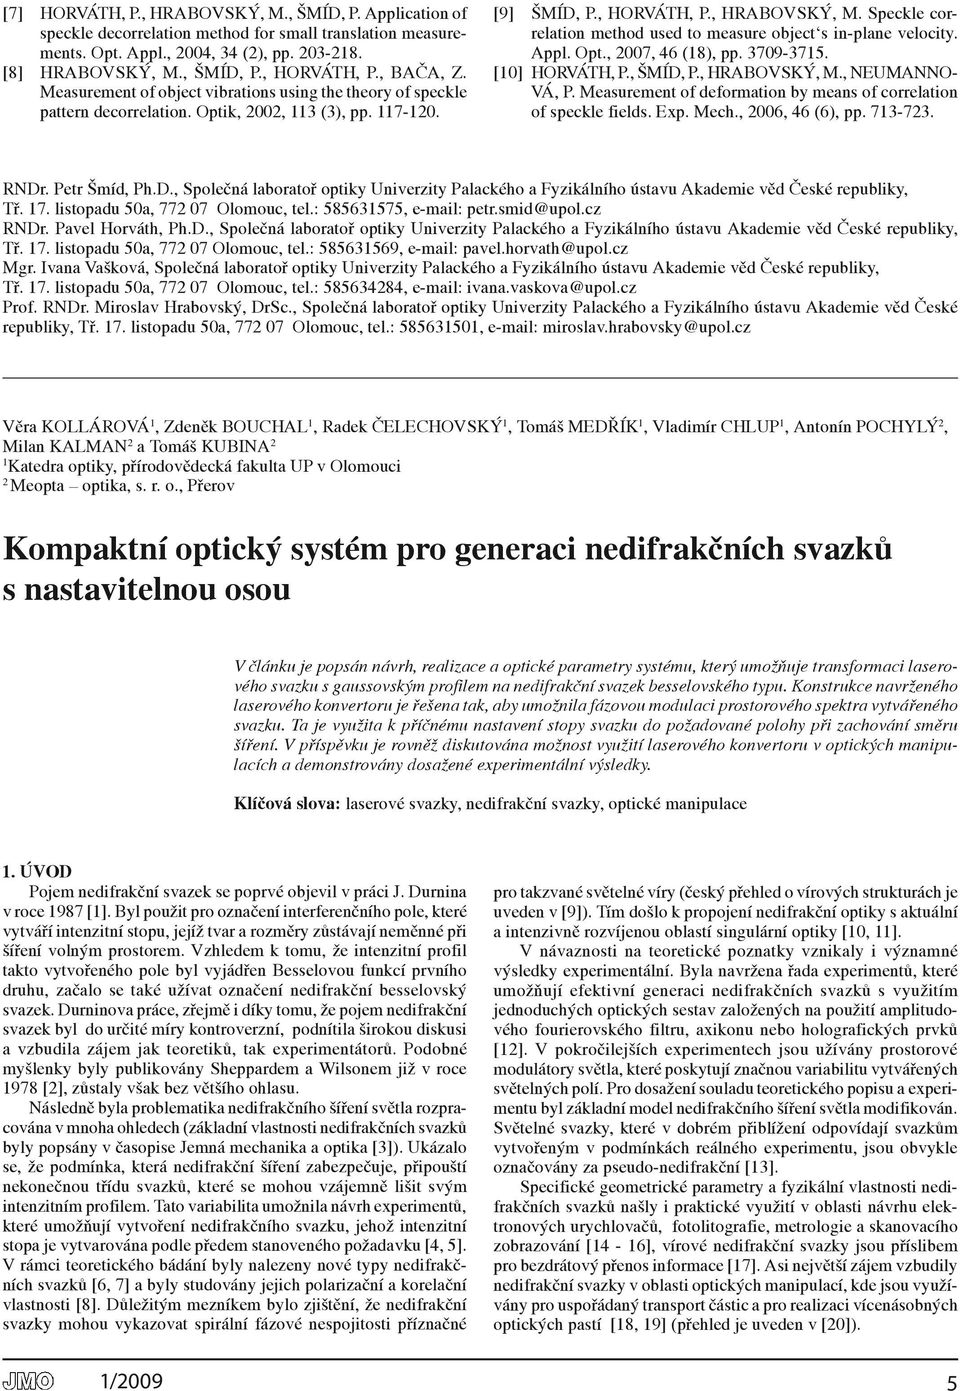 speckle correlation method used to measure object s in-plane velocity. appl. opt., 007, 46 (18), pp. 3709-3715. [10] HorvÁTH, P., ŠMÍD, P., Hrabovský, M., NEUMaNNovÁ, P.